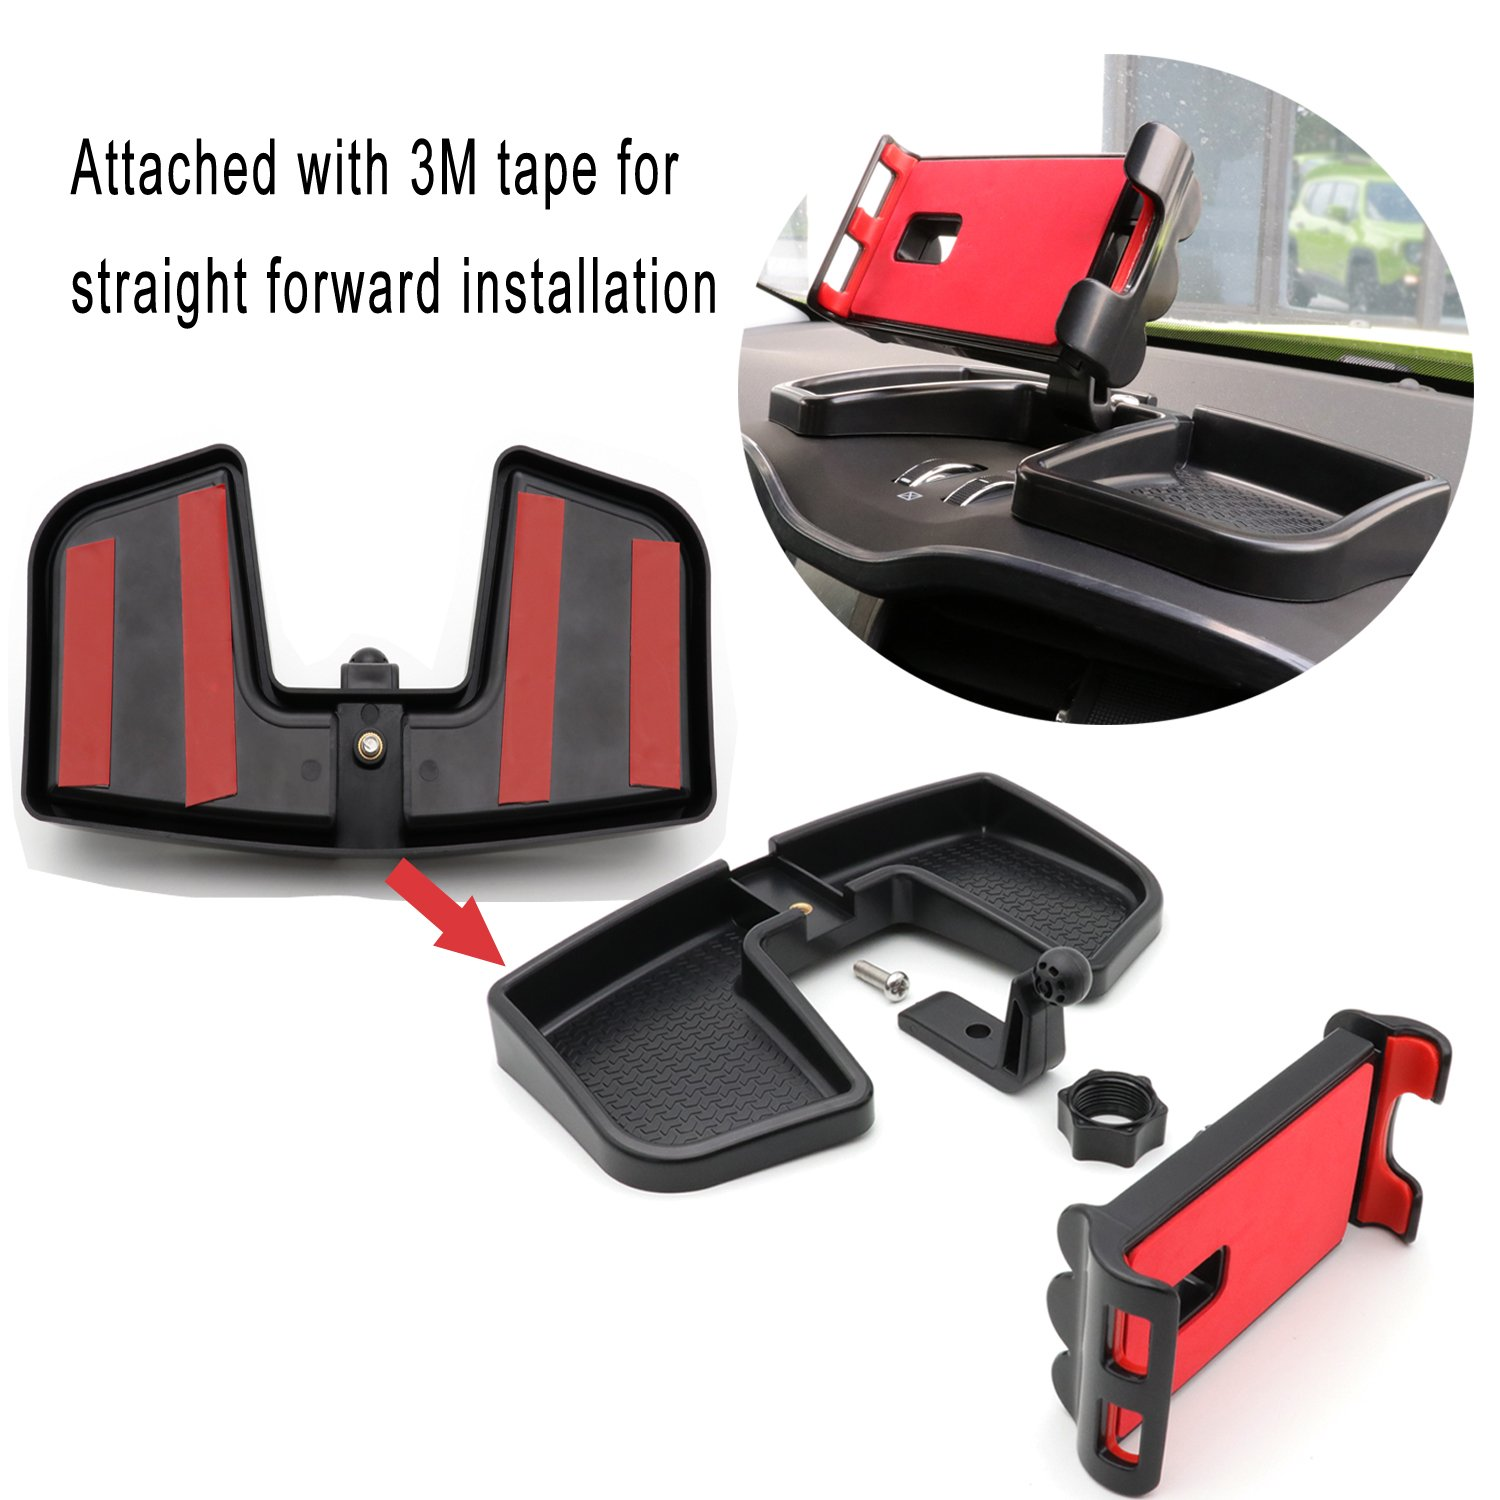 Yoursme Ipad Phone Holder Black/&Red ABS Car Dash 360 Degree Rotate with Storage Box GPS Auto Mobile Stand Kit for Jeep Renegade 2015 2016 2017